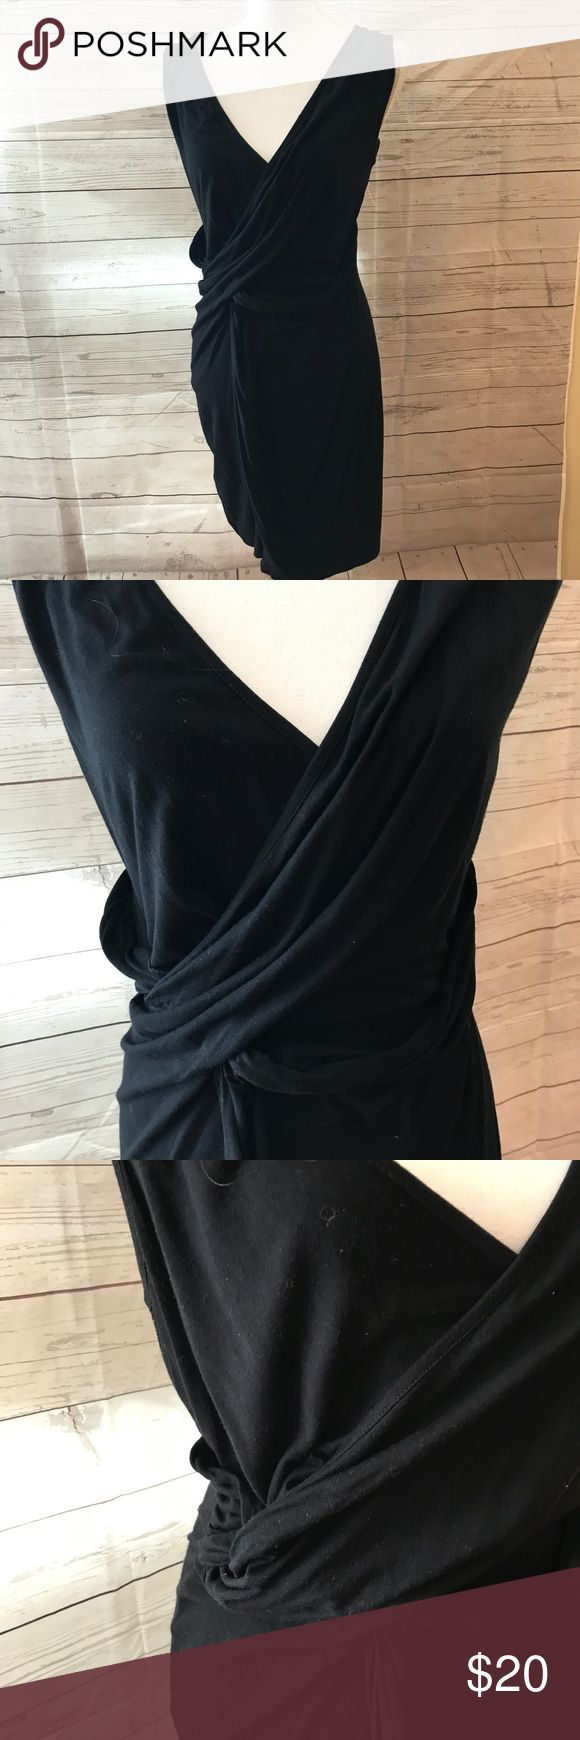 Asos petite black wrap dress lbd size 10 Crossover wrap style dress, fun twist detailing on hip. Stretchy. Good used condition. About 35 inches long ASOS Petite Dresses